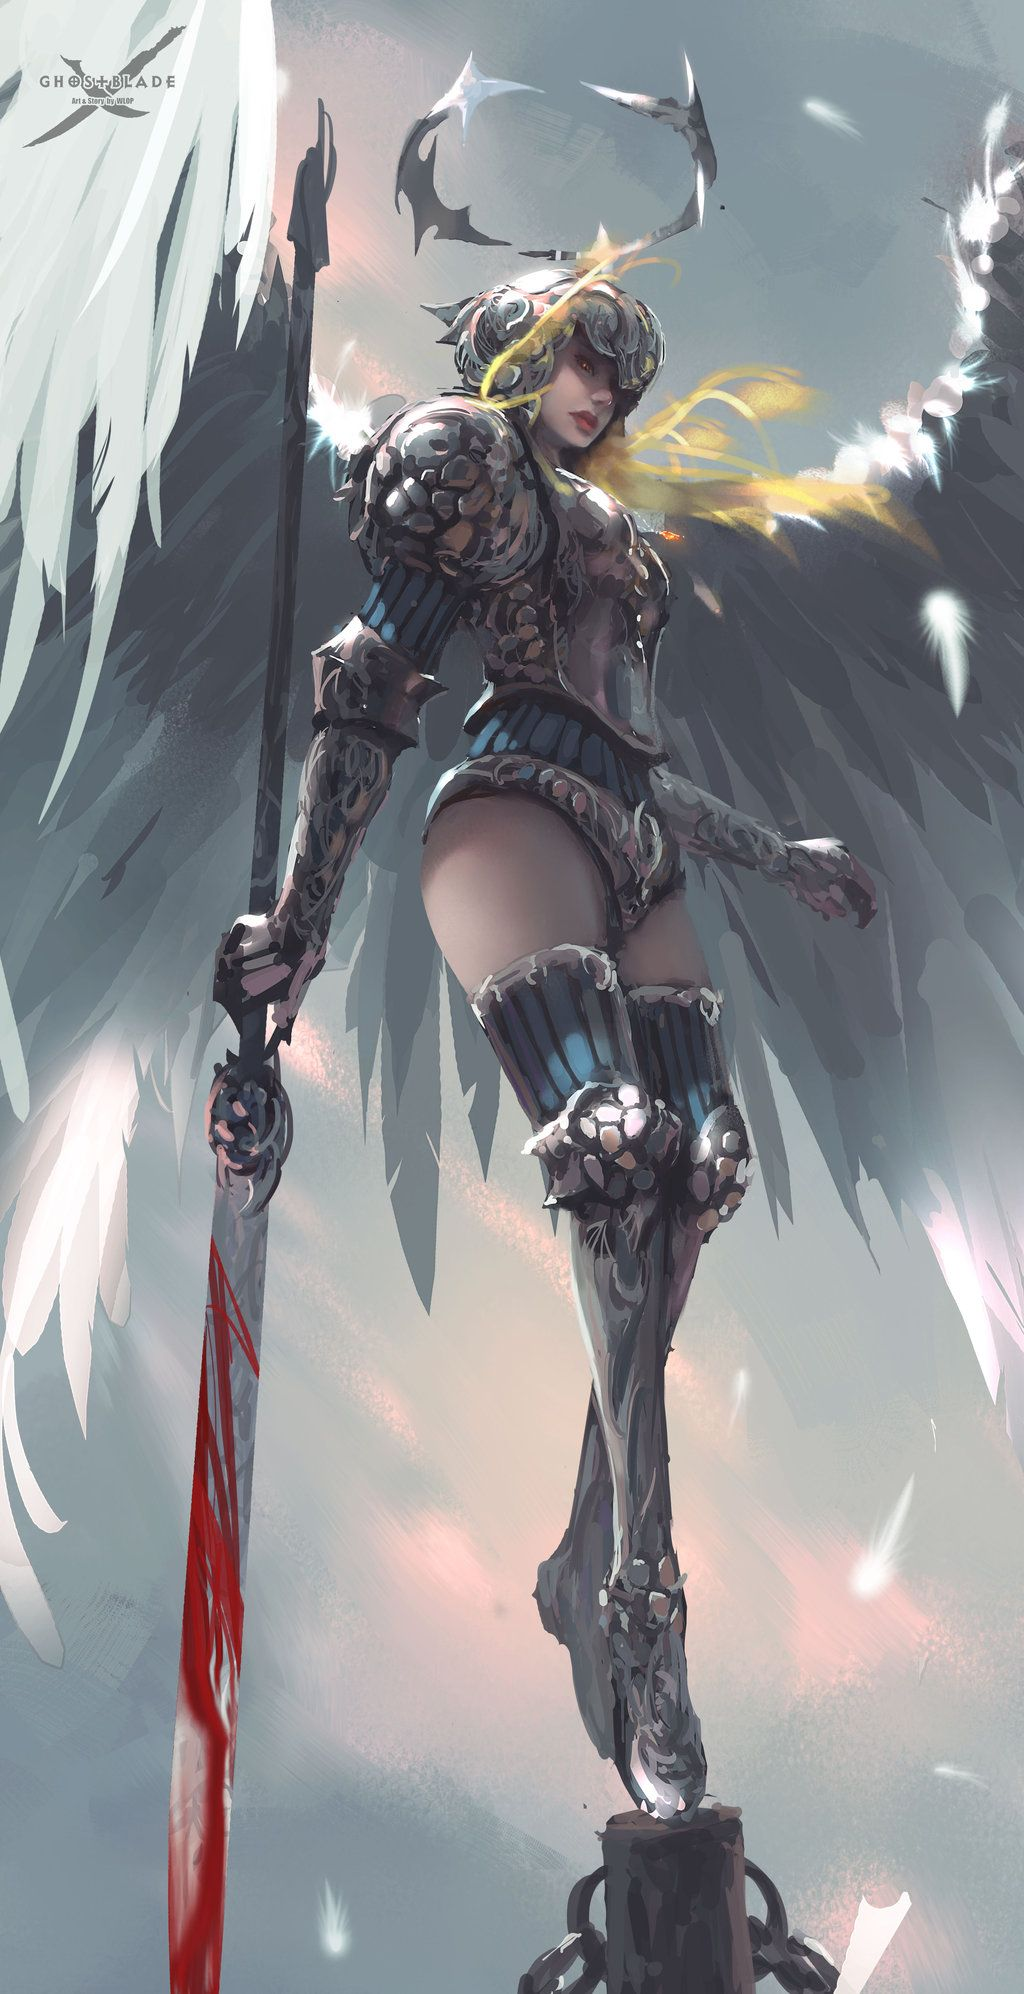 Sarlia By Wlop GhostBalde Indie Comic Female Angel Princess Sarlina Sword Spear Armor Clothes Clothing Fashion